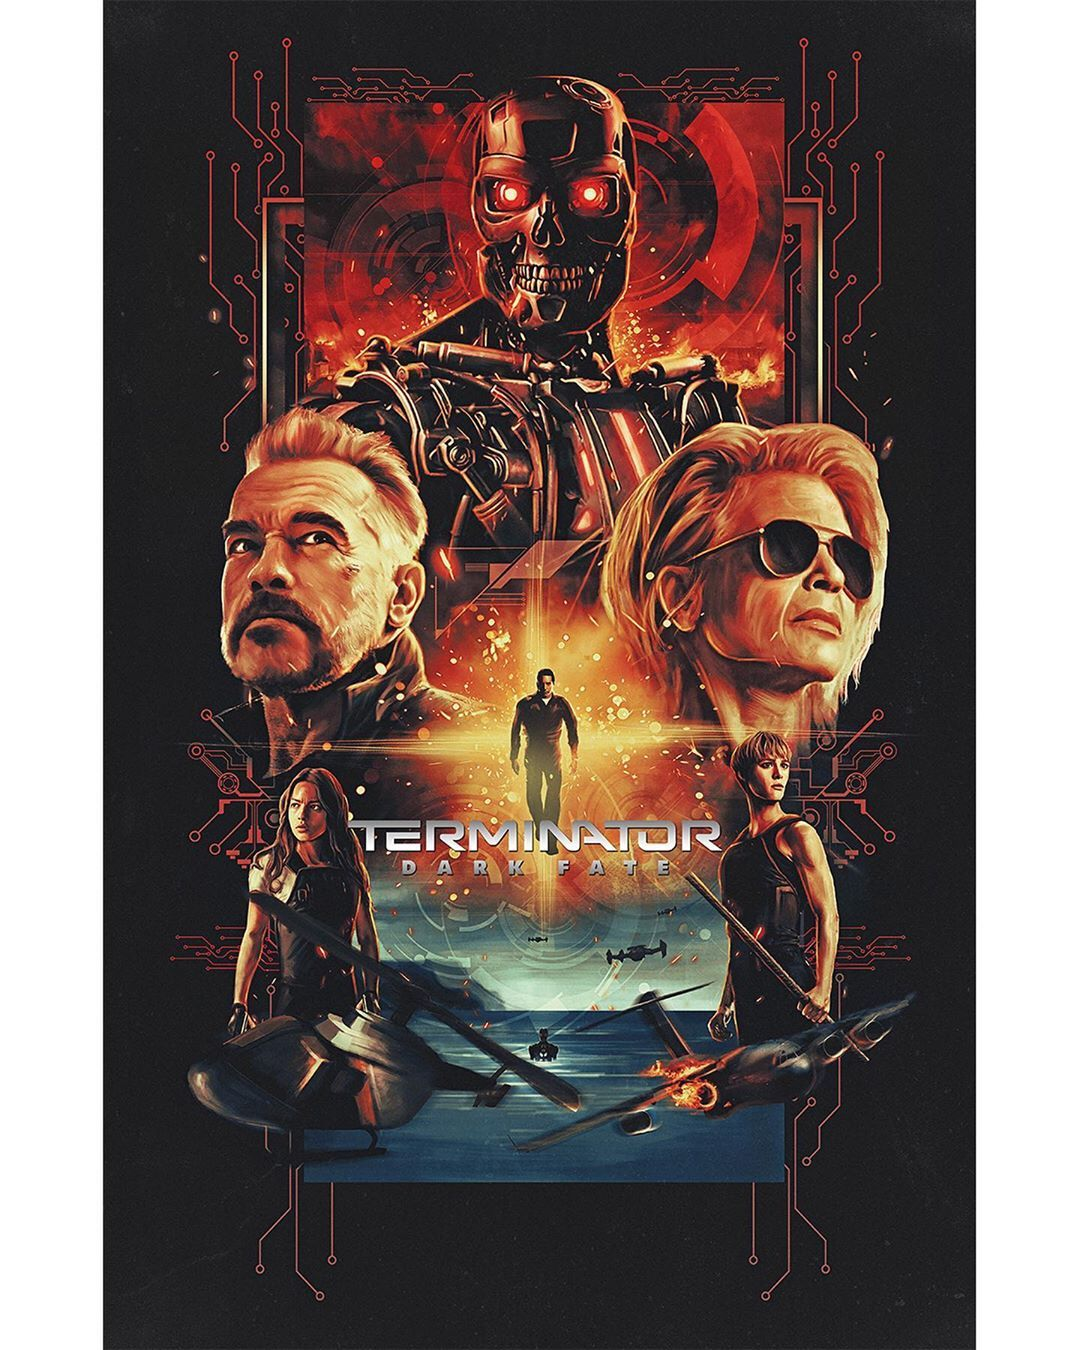 Terminator Dark Fate On Instagram These Original Terminatordarkfate Posters Are Absolutely Fantastic Congratulations To All Of The Art Fan Art Terminator